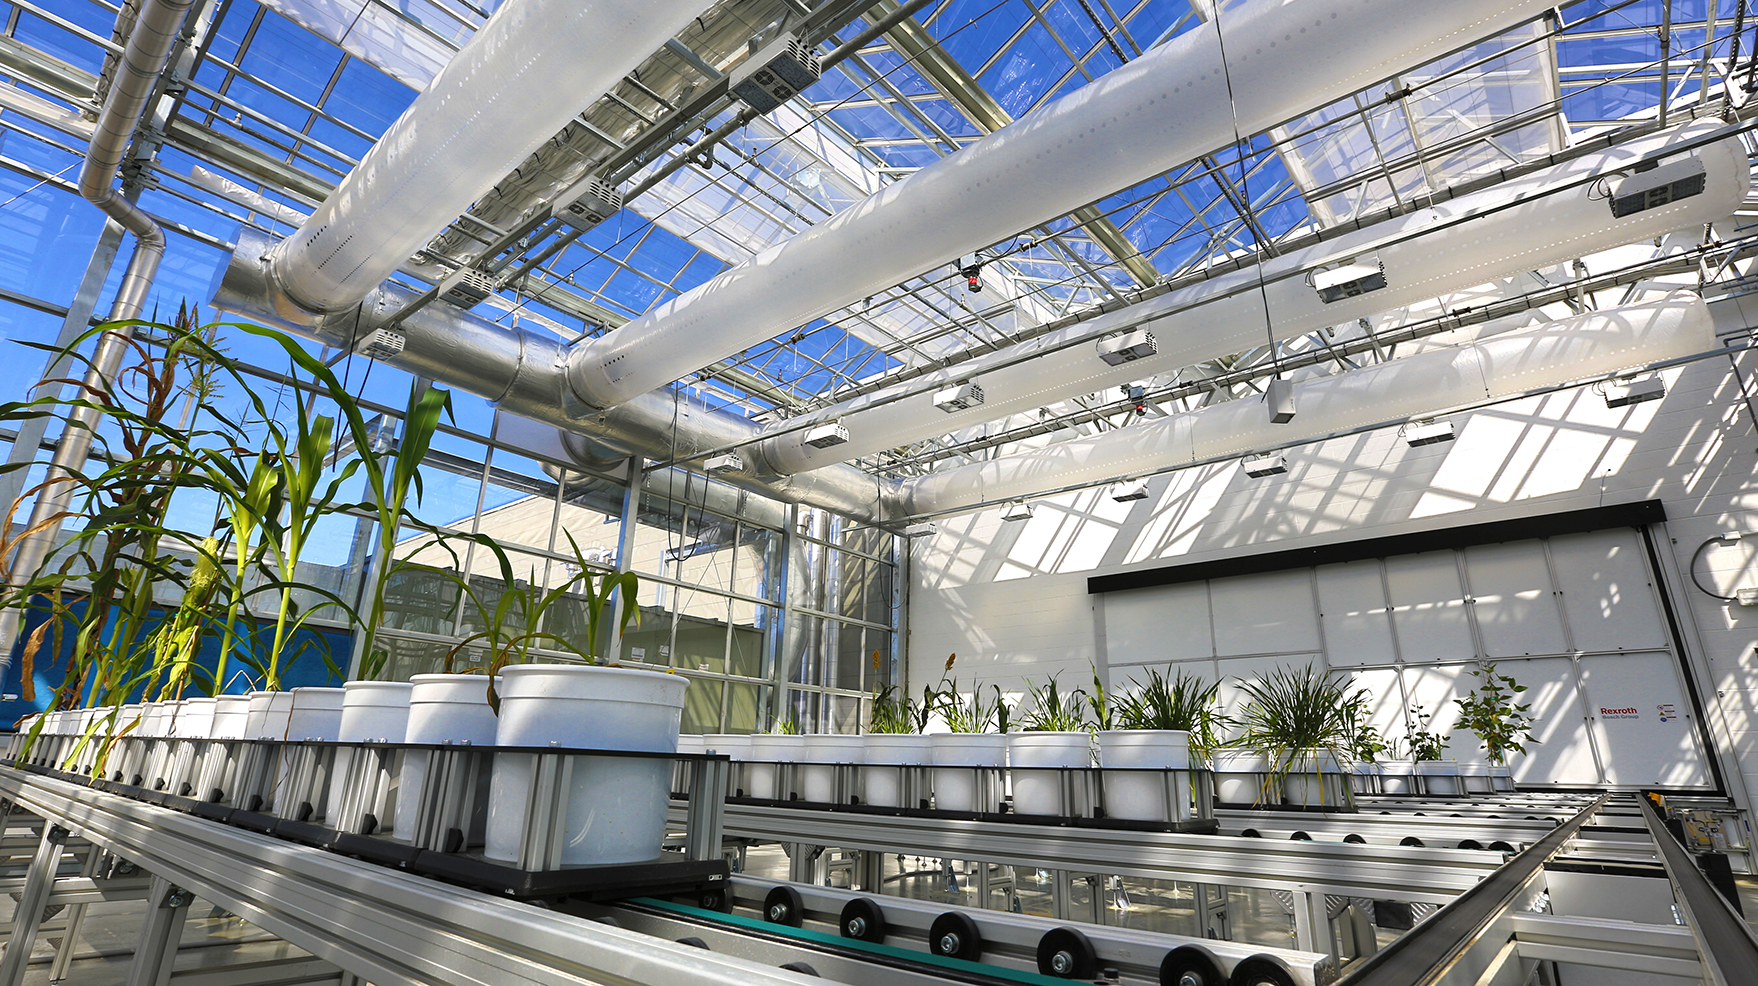 Lincoln Of Troy >> Researchers offer preview of Innovation Campus greenhouse | Nebraska Today | University of ...